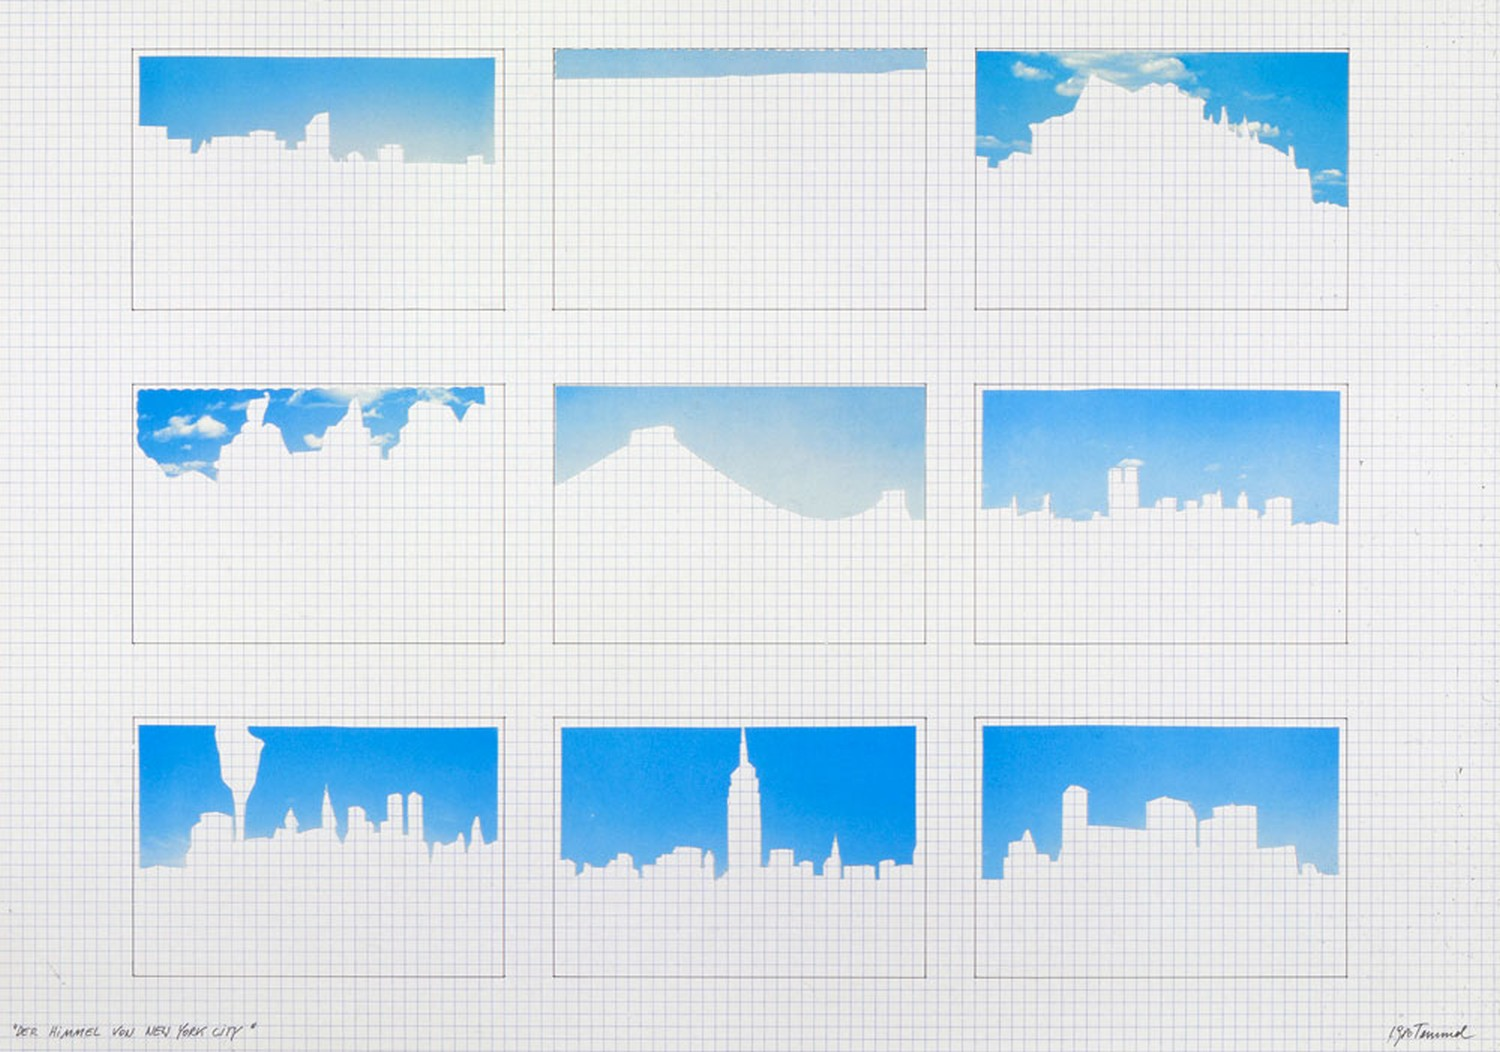 Der Himmel von NYC / 